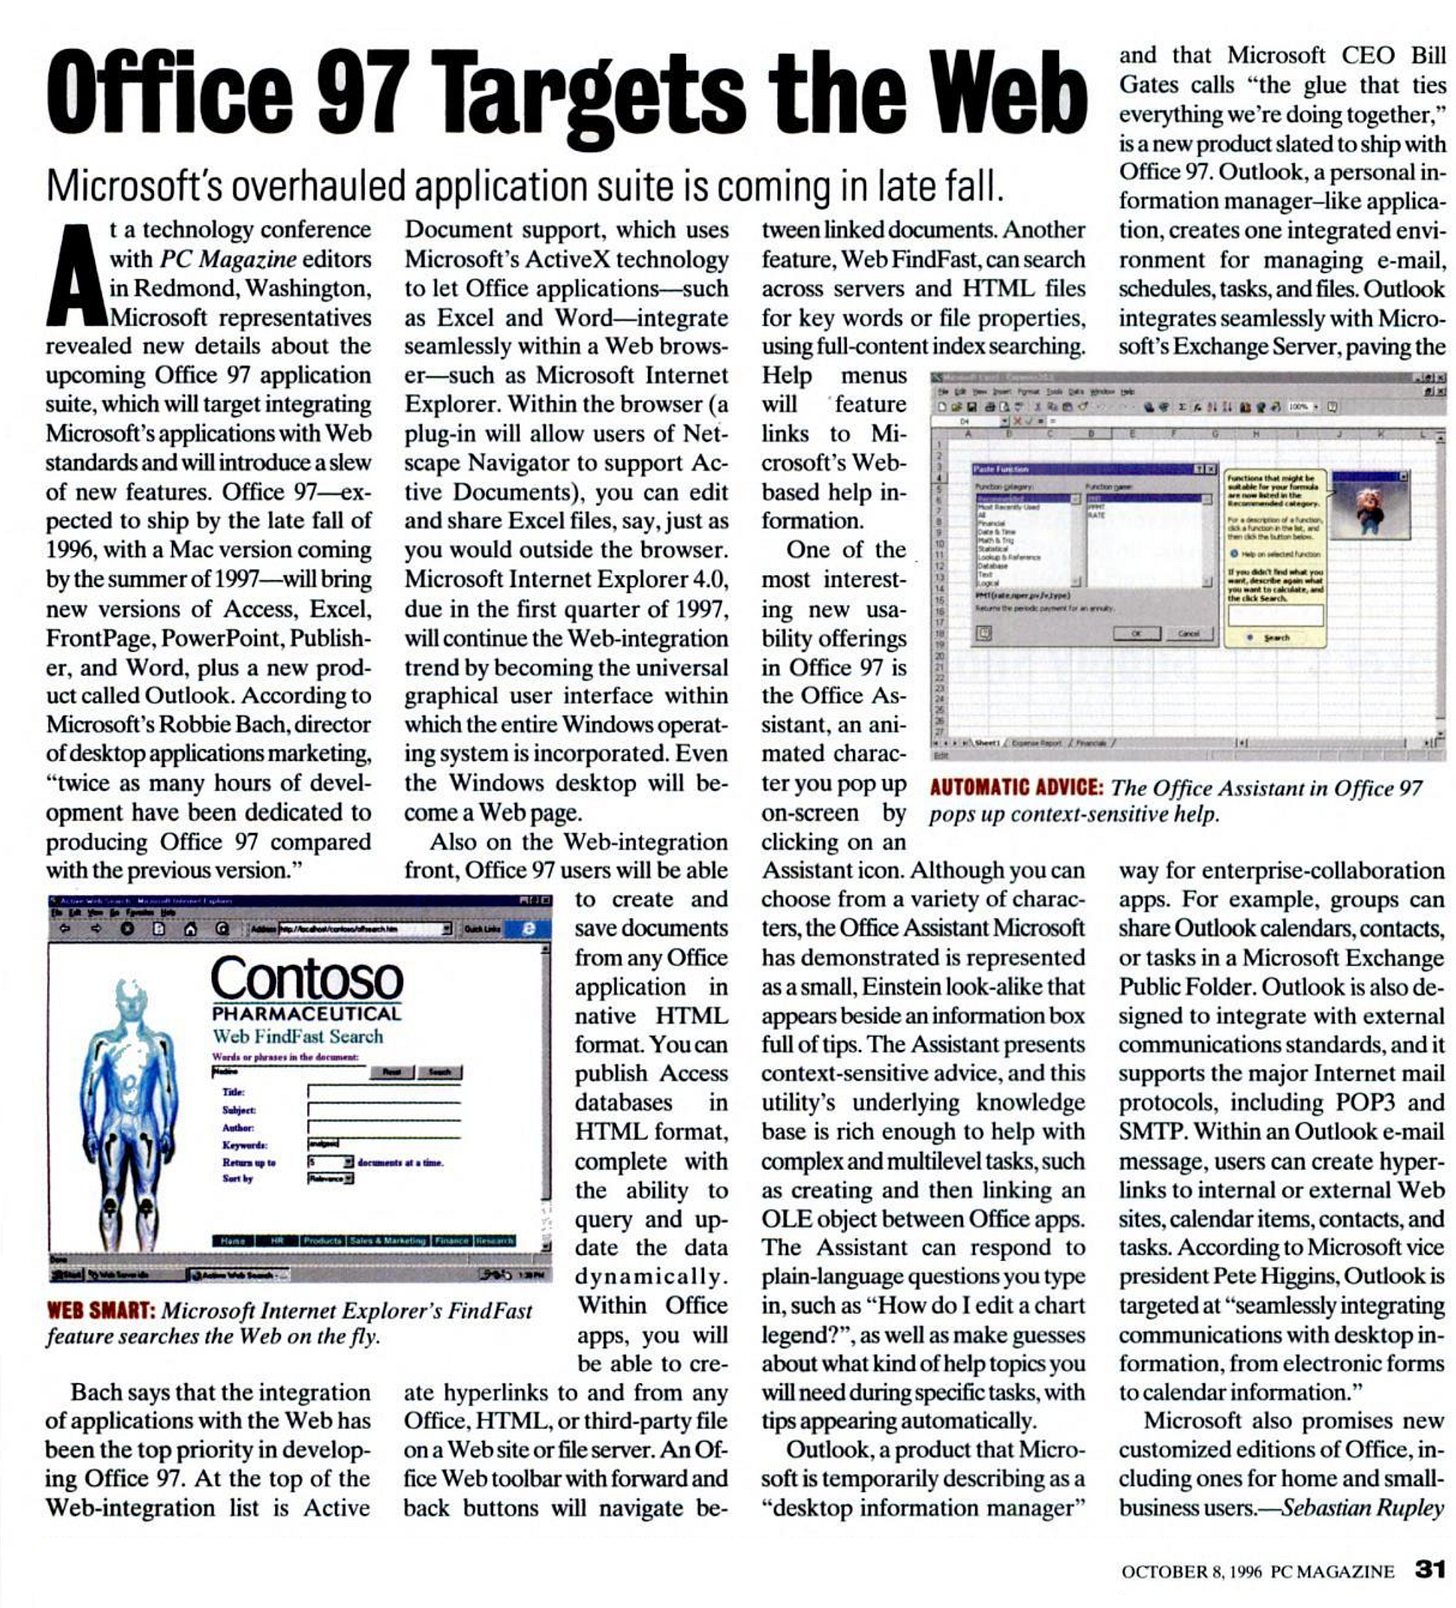 Office 97 Targets the Web